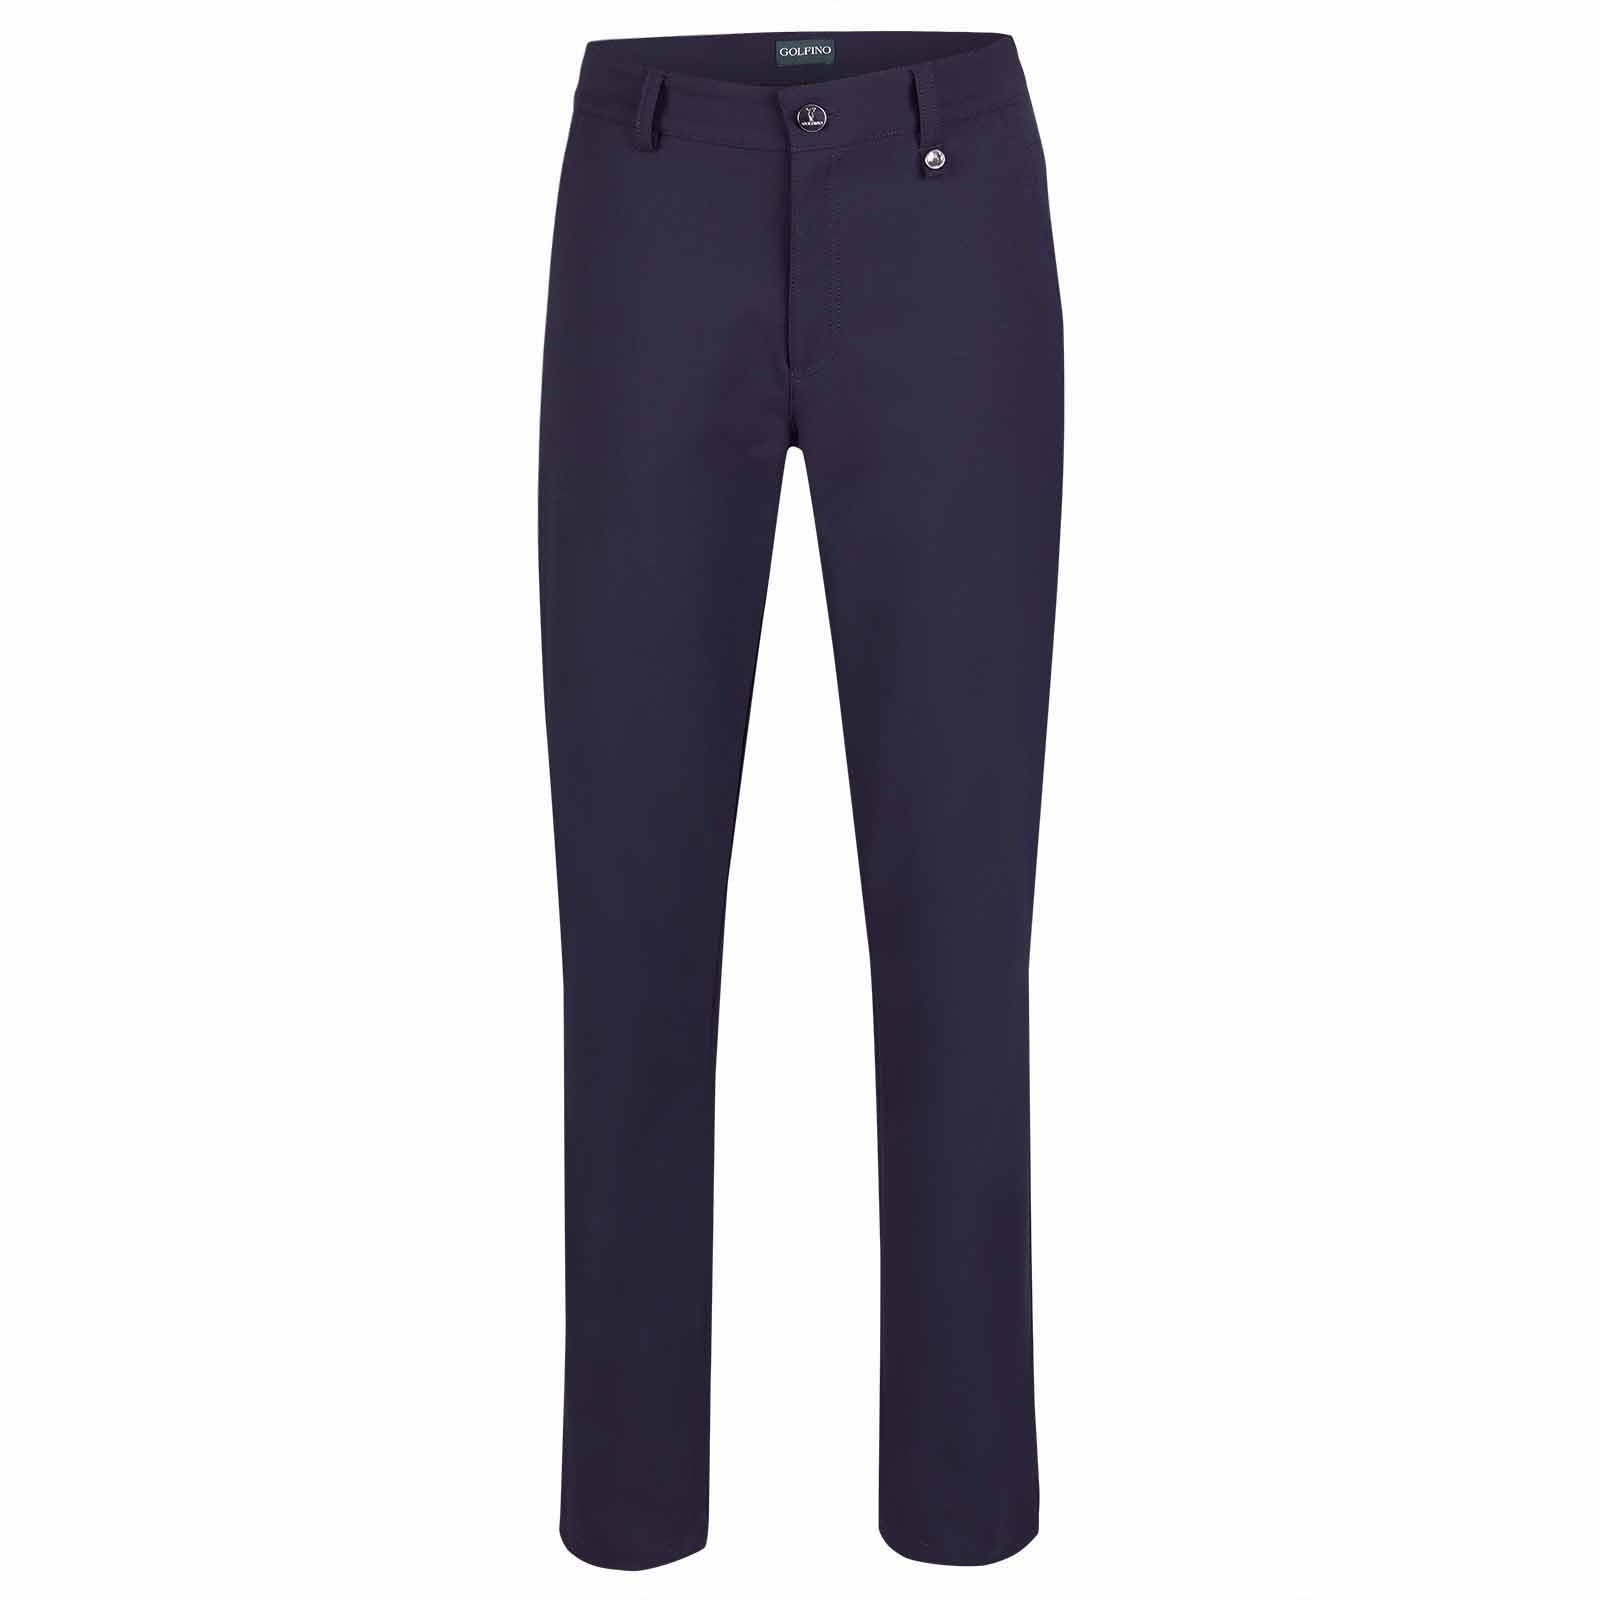 Water repellent 7/8 ladies' golf trousers